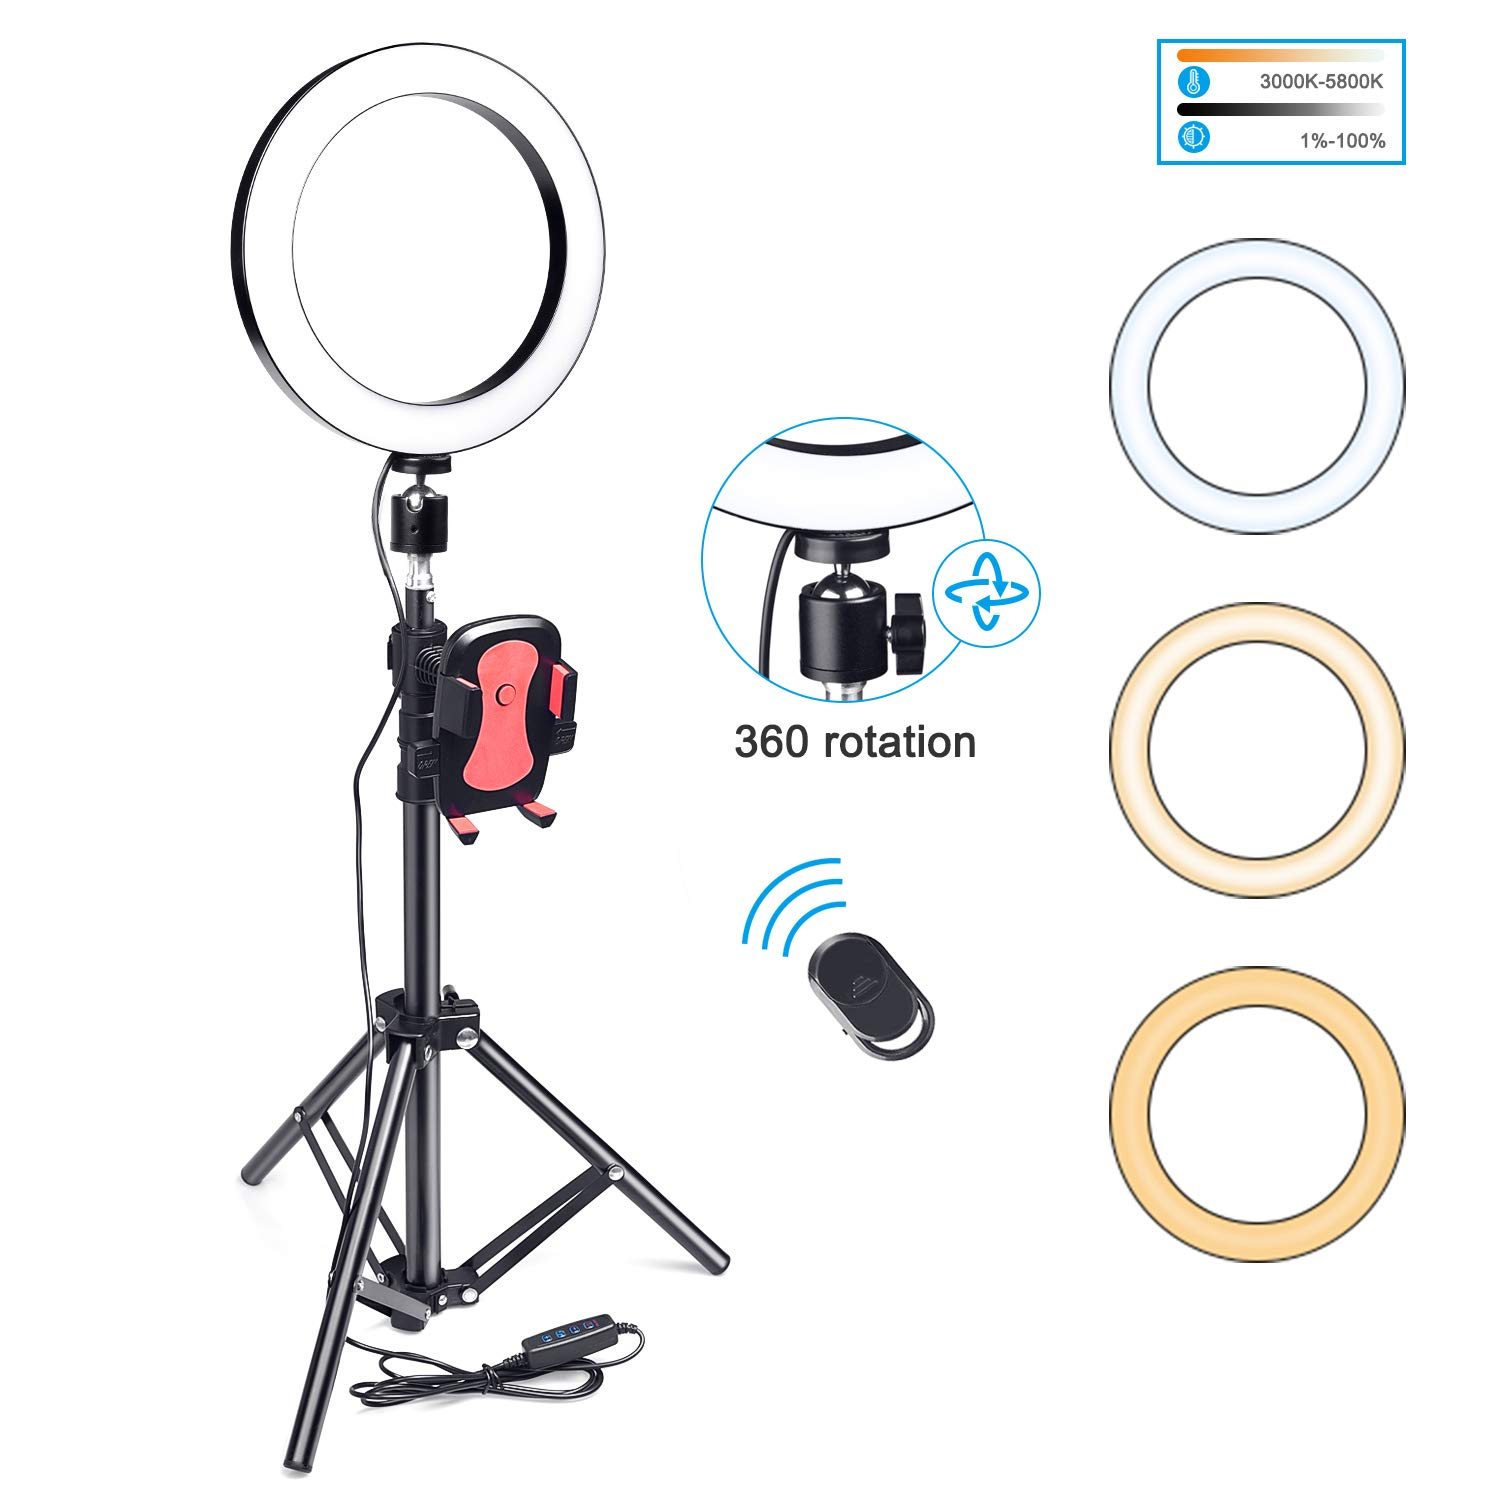 8'' Selfie Ring Light with Flexible Tripod Stand and Cell Phone Holder, Dimmable LED Selfie Light for Live Stream/Makeup/YouTube Video with 3 Light Modes, Compatible with iPhone Android